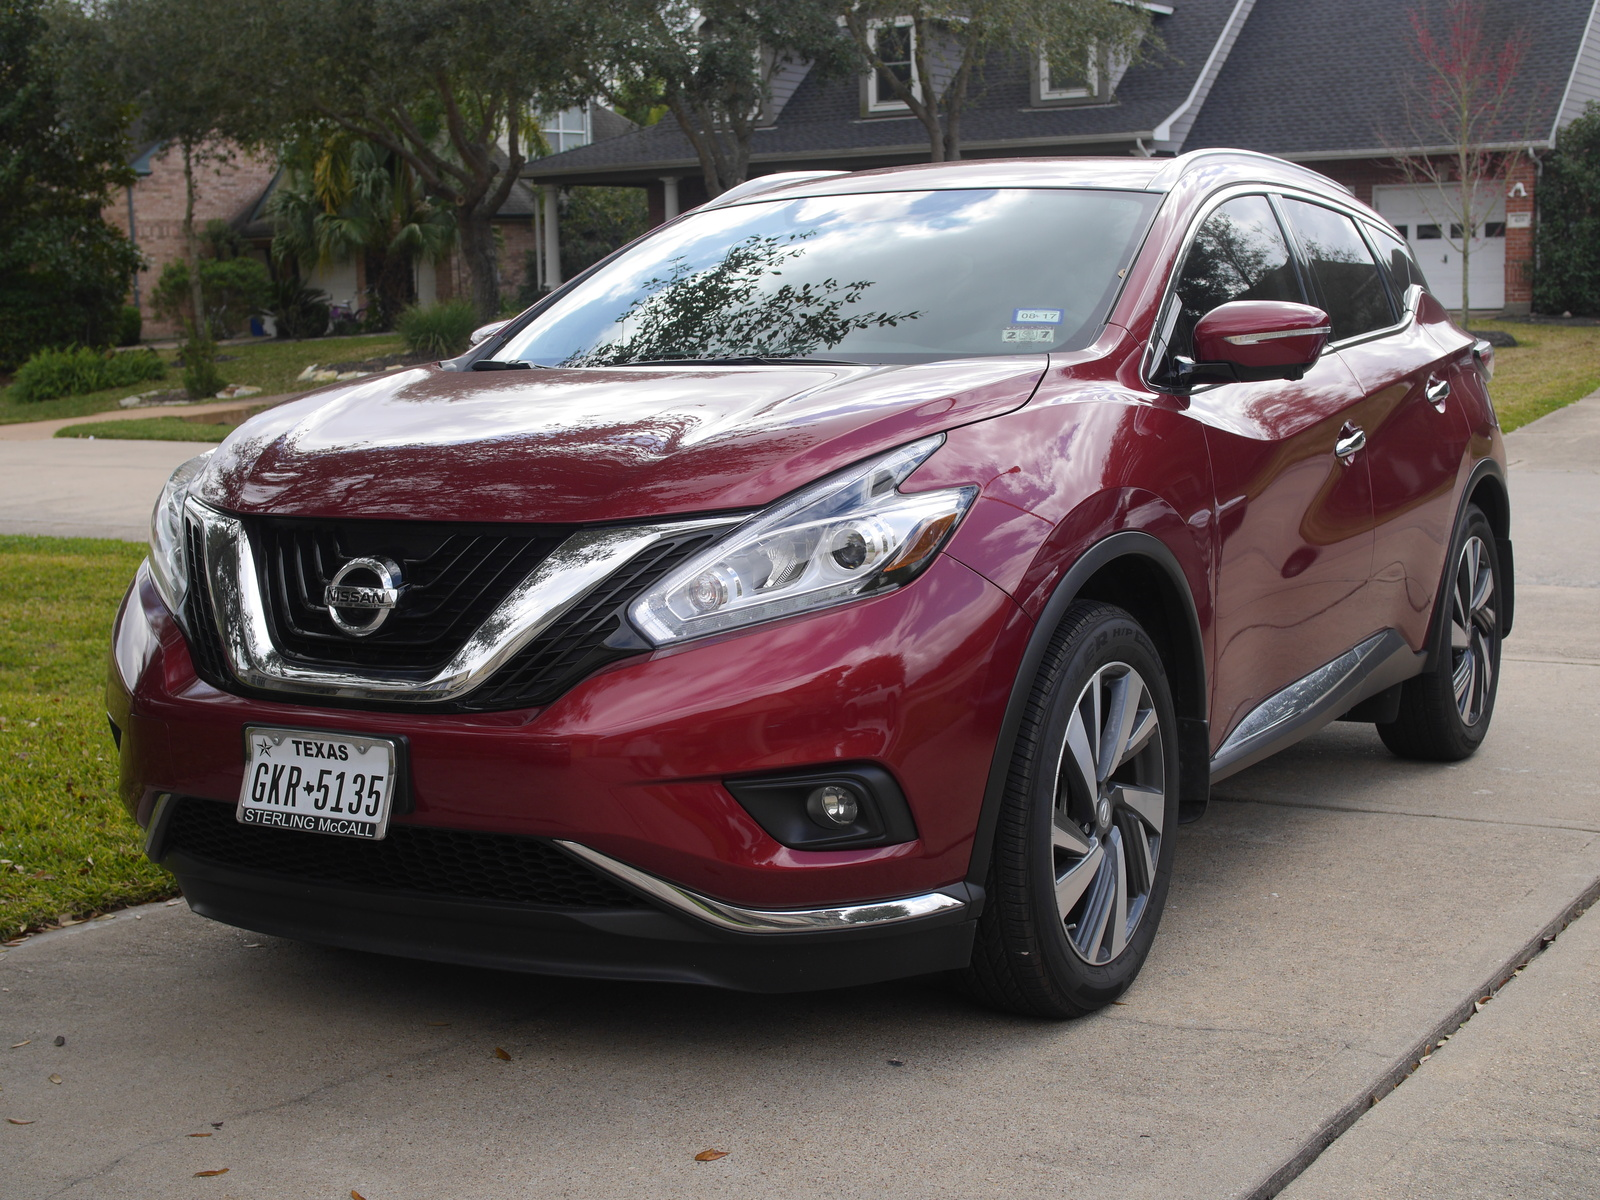 New 2015 2016 Nissan Murano For Sale Cargurus